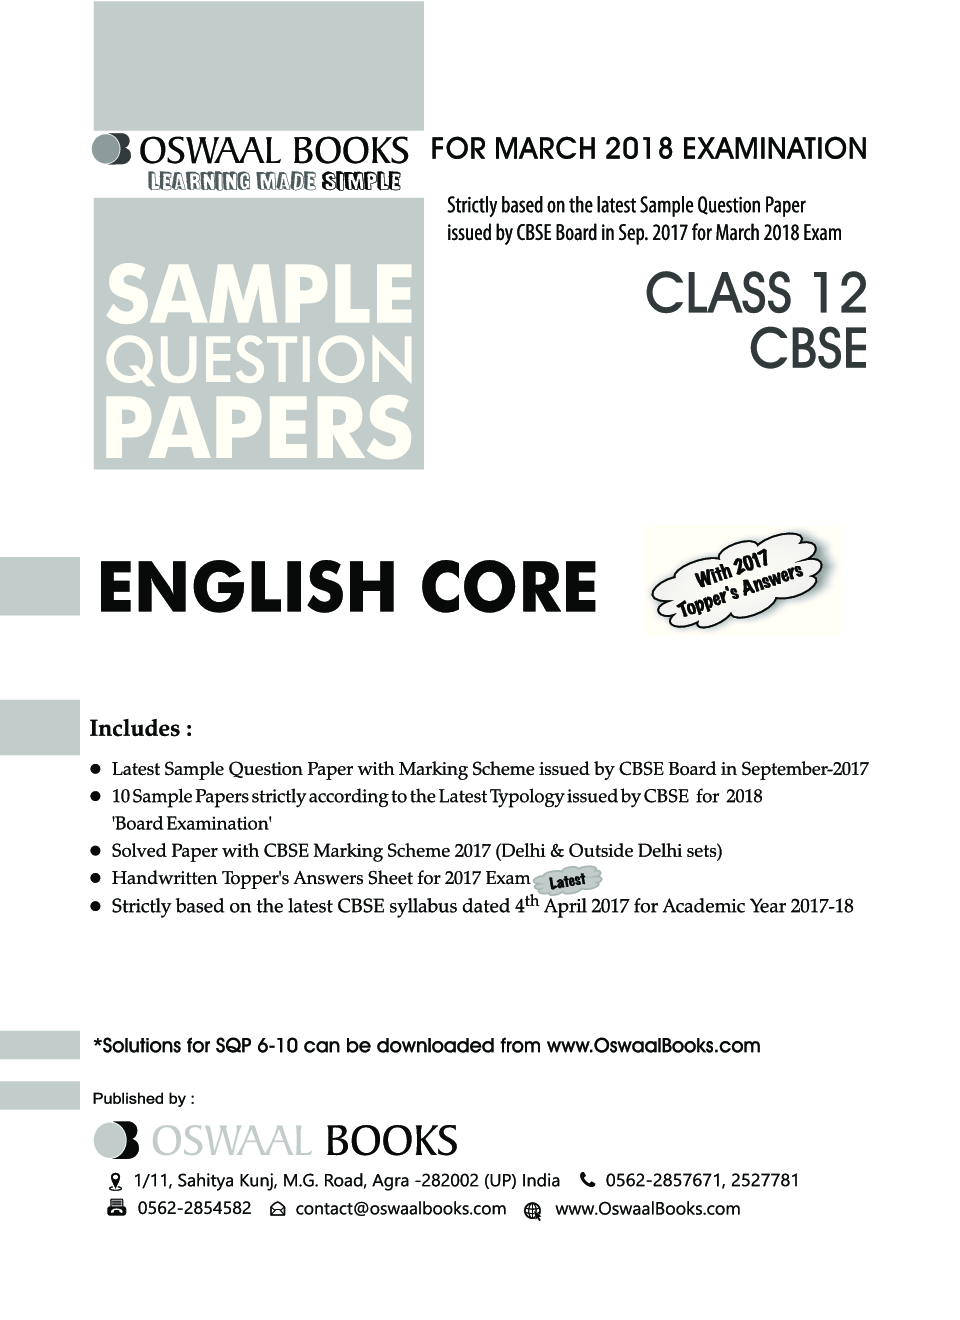 Oswaal cbse sample question papers for class xii english core mar oswaal cbse sample question papers for class xii english core mar 2018 exam by panel of experts fandeluxe Image collections